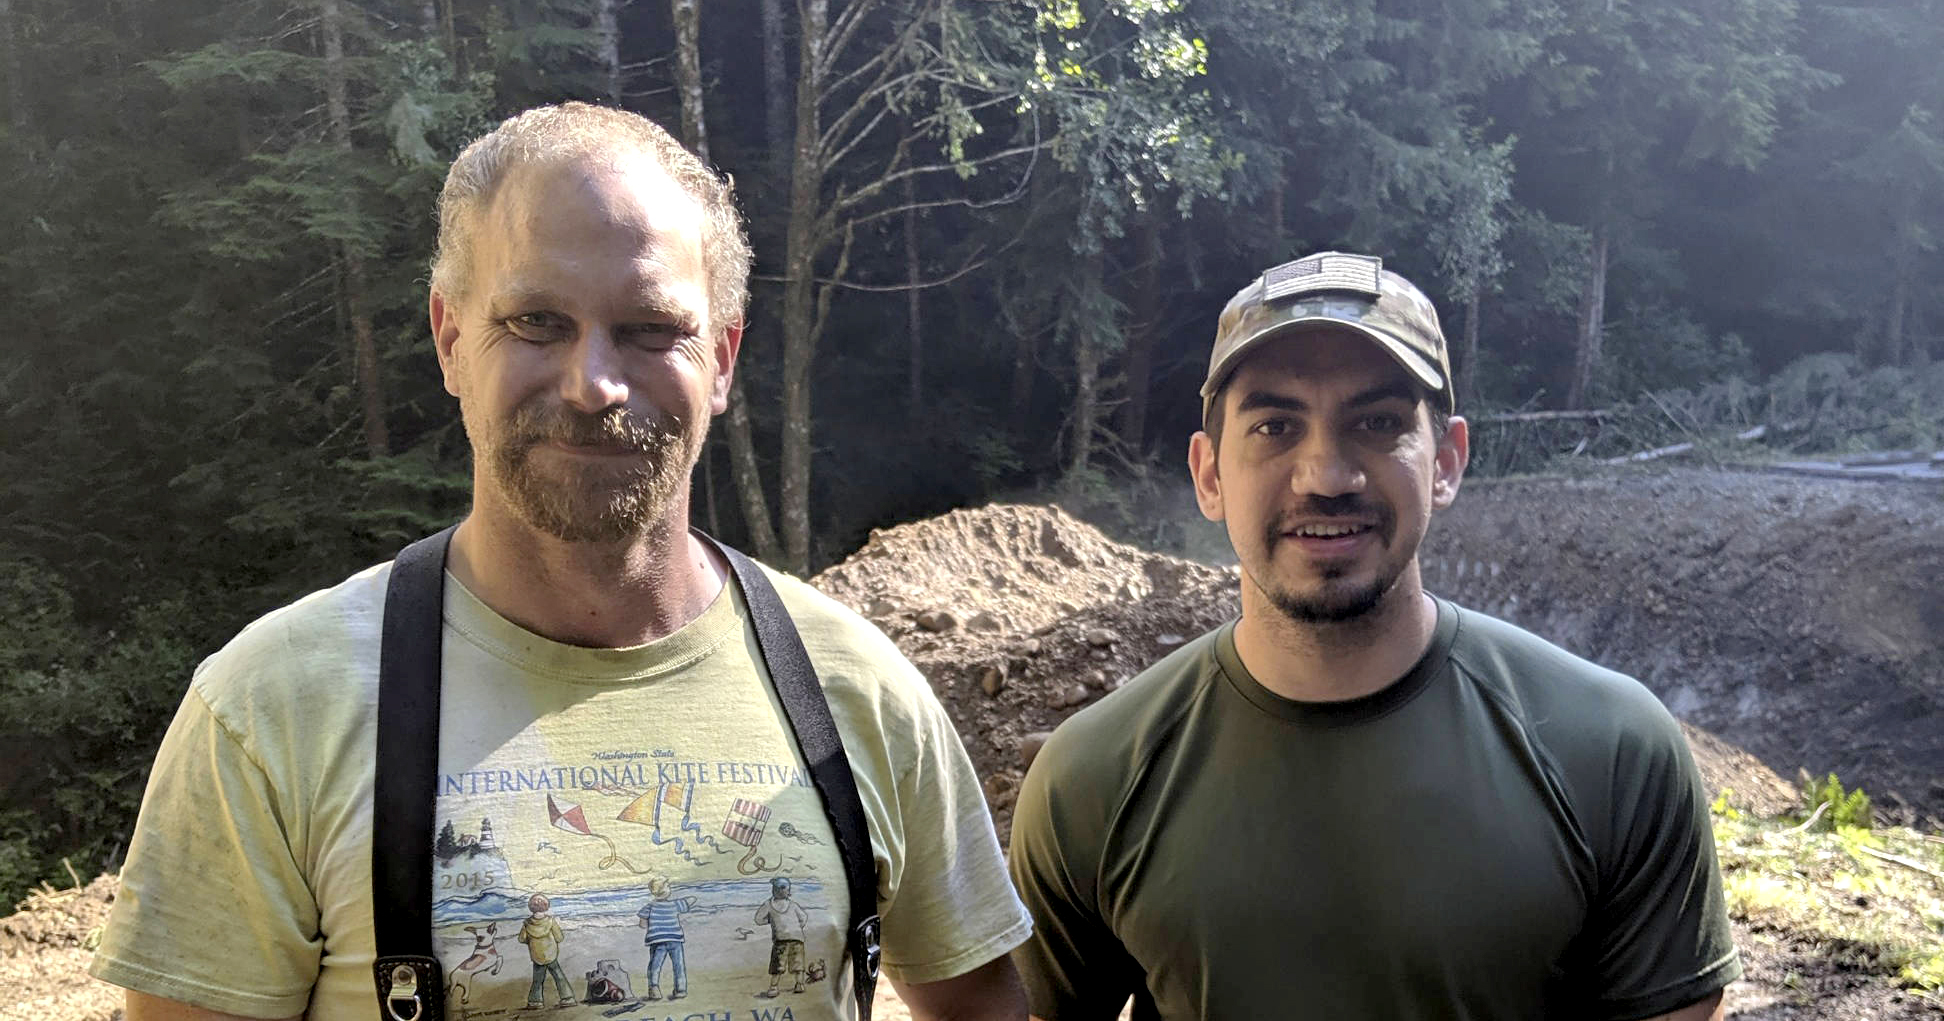 Hero Teamster Apprehends Runaway Inmate near Olympic National Forest Image